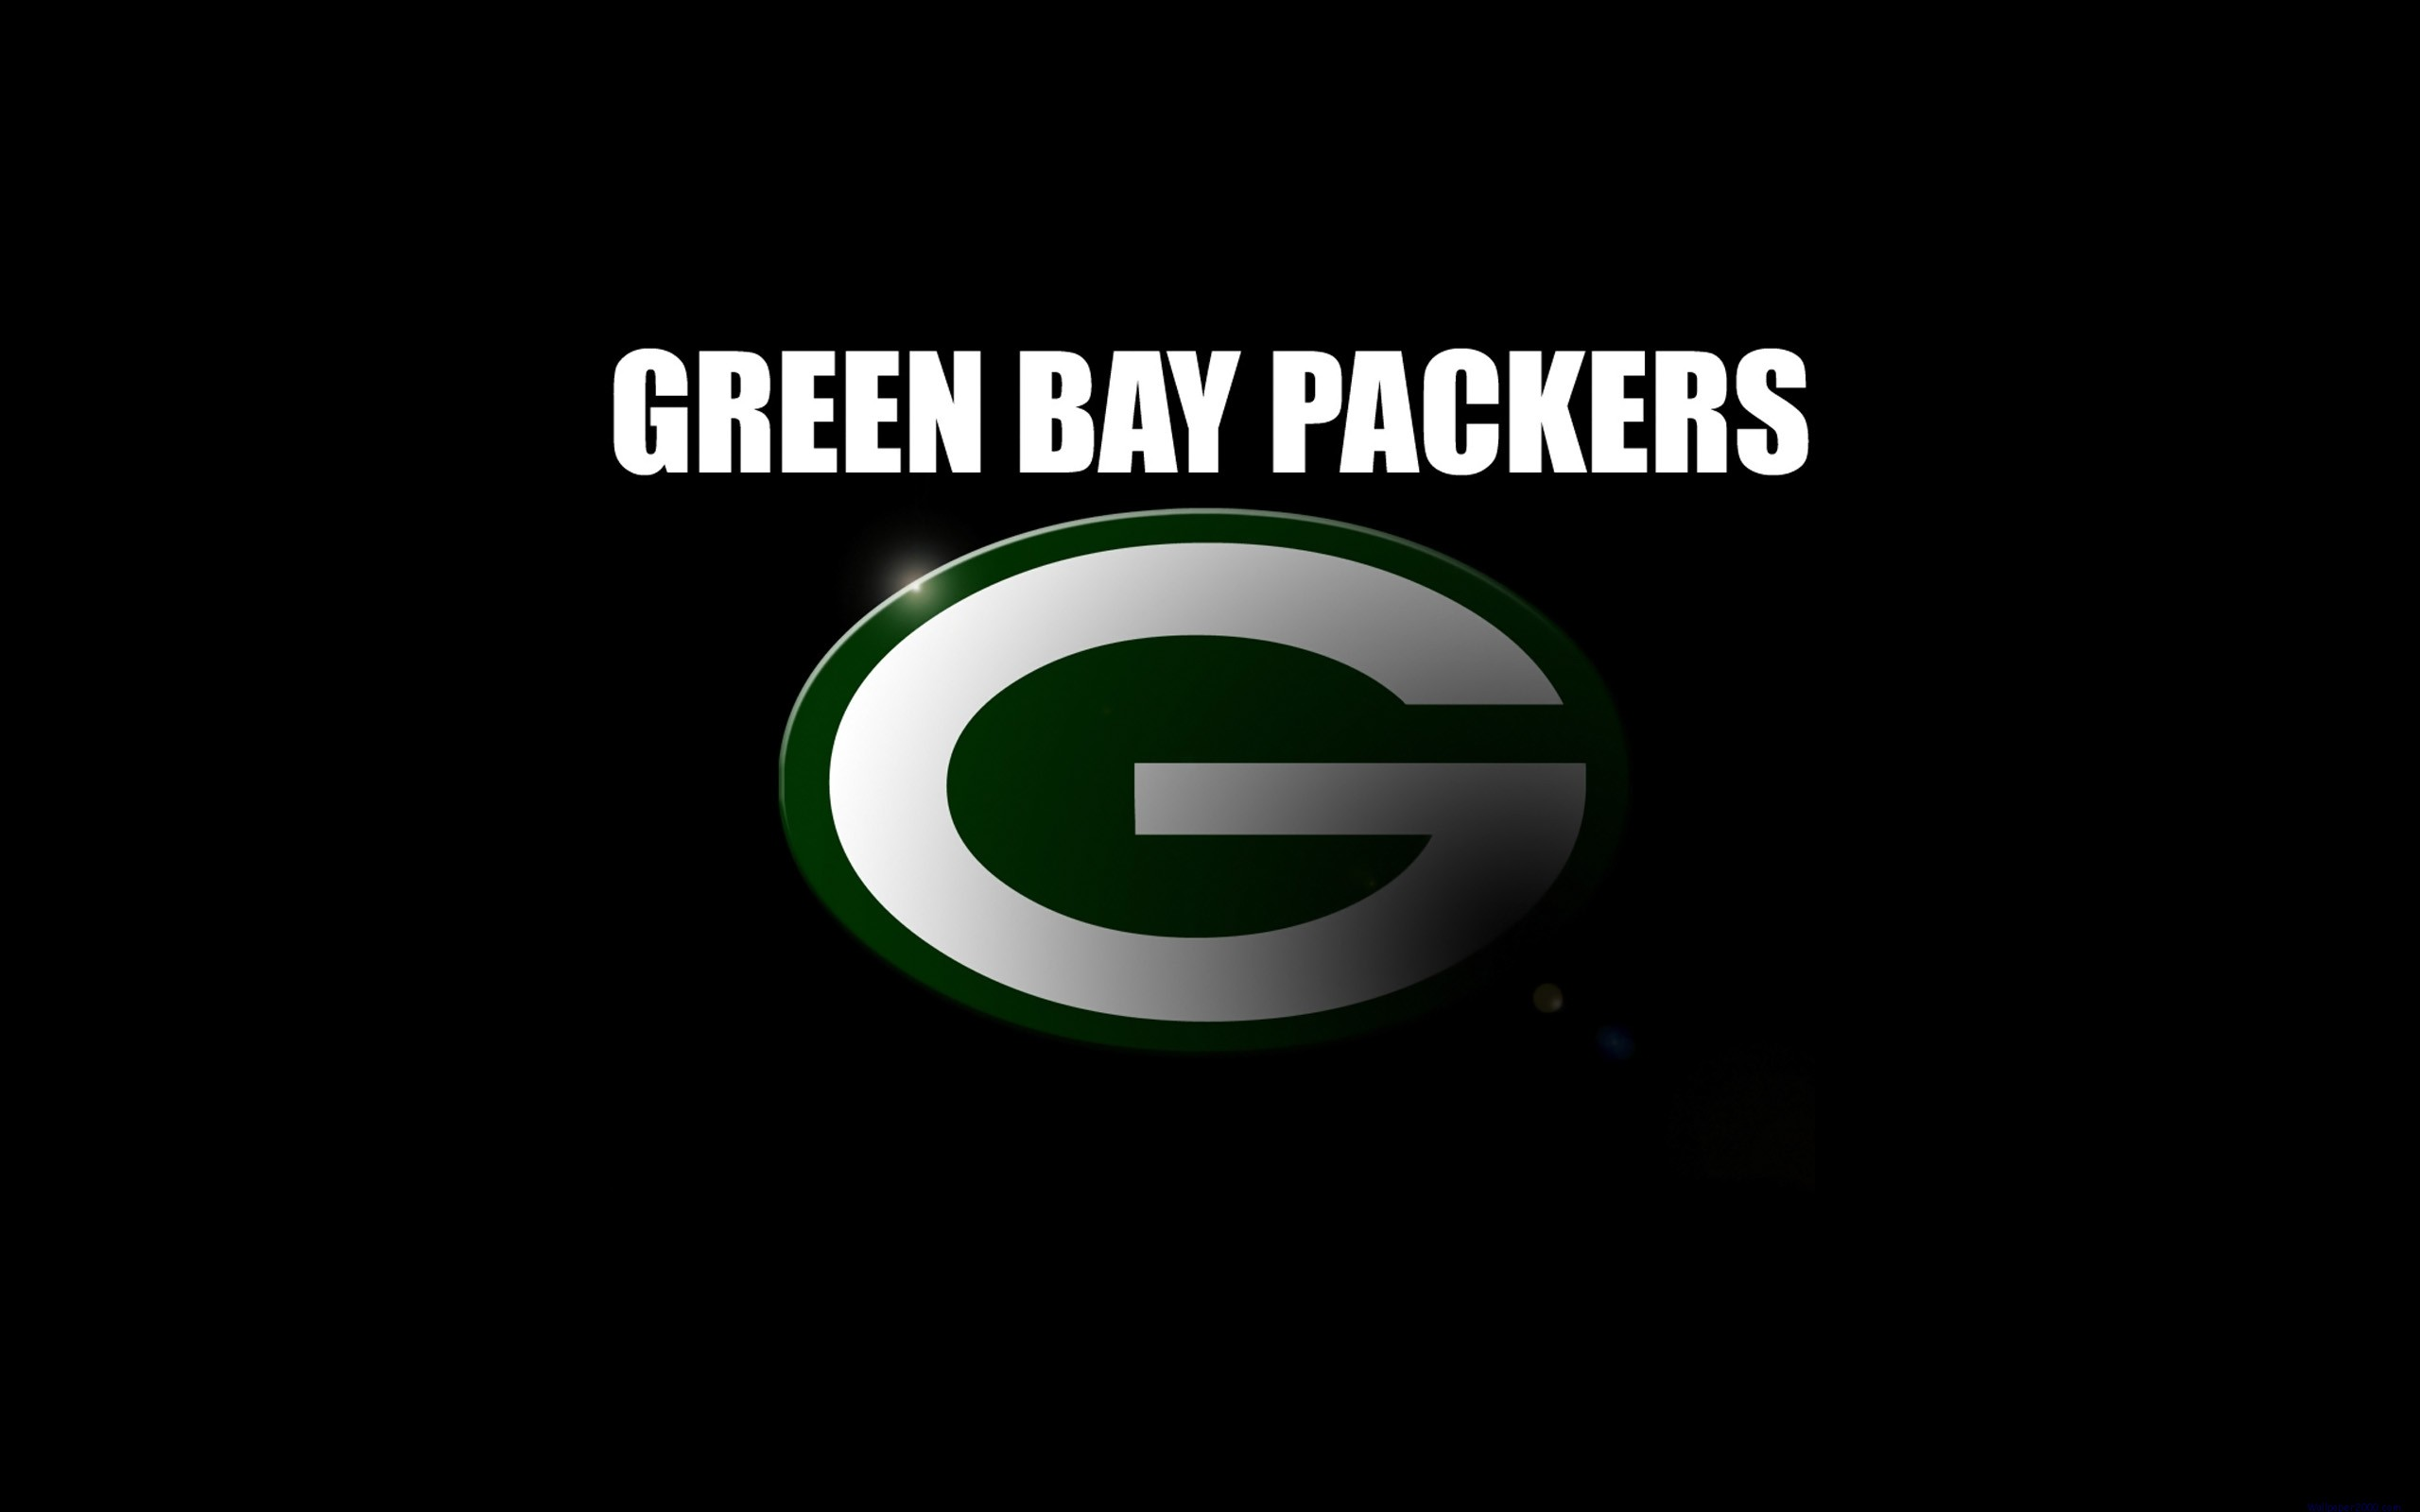 green bay packers nfl png logo wallpaper #2946